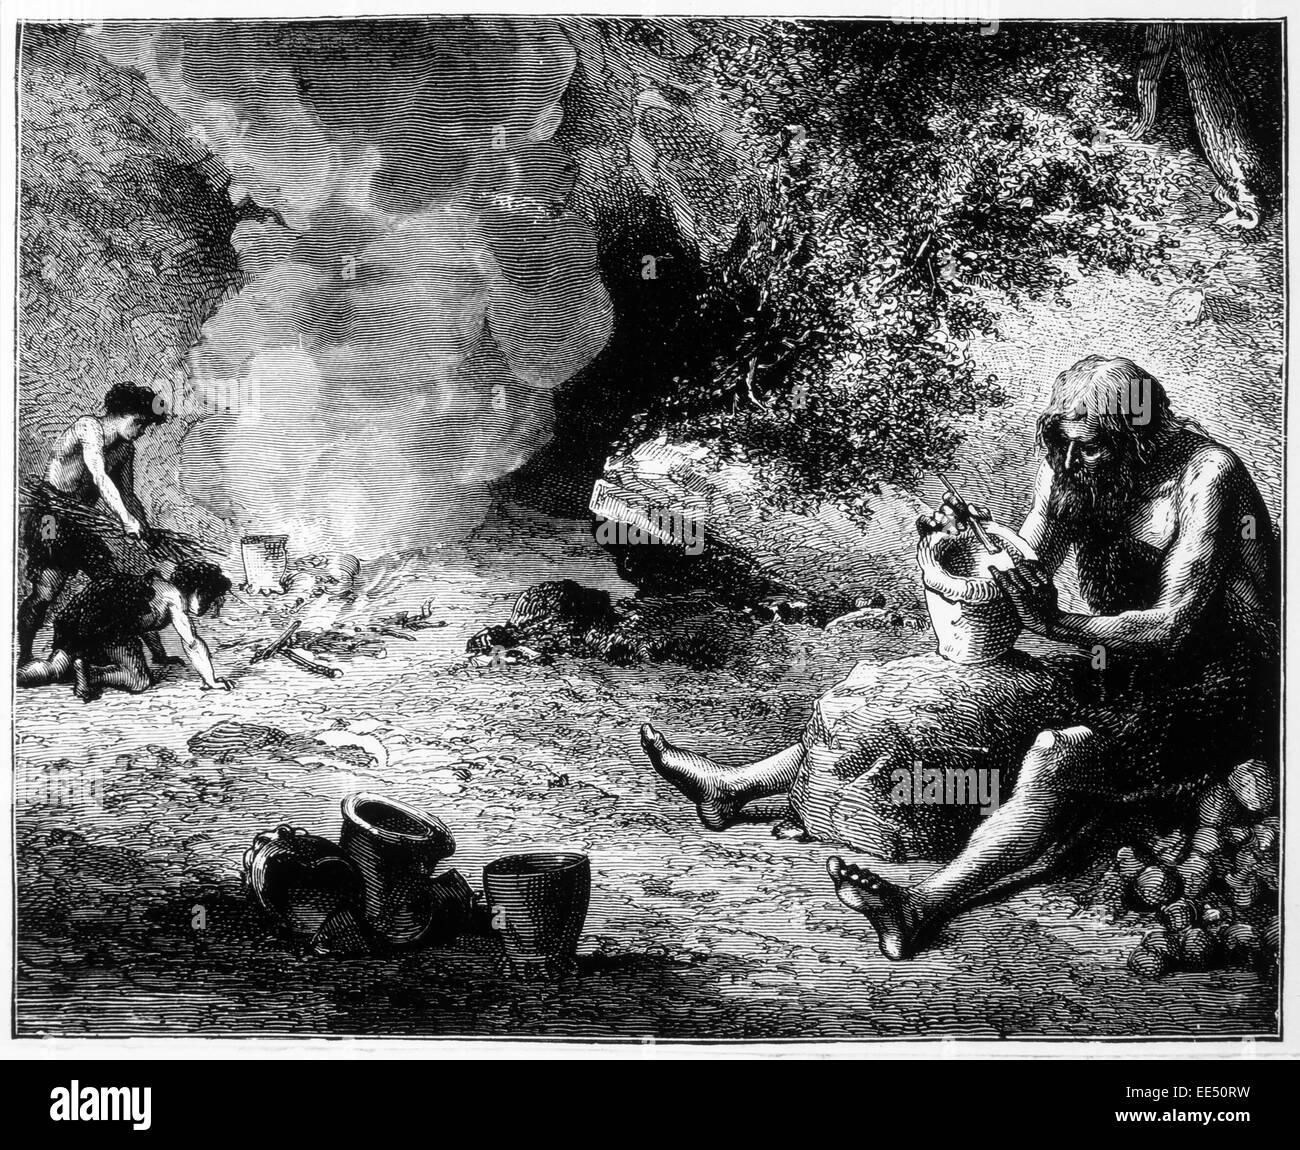 Prehistoric Potter with his Fire, Engraving, 1892 - Stock Image